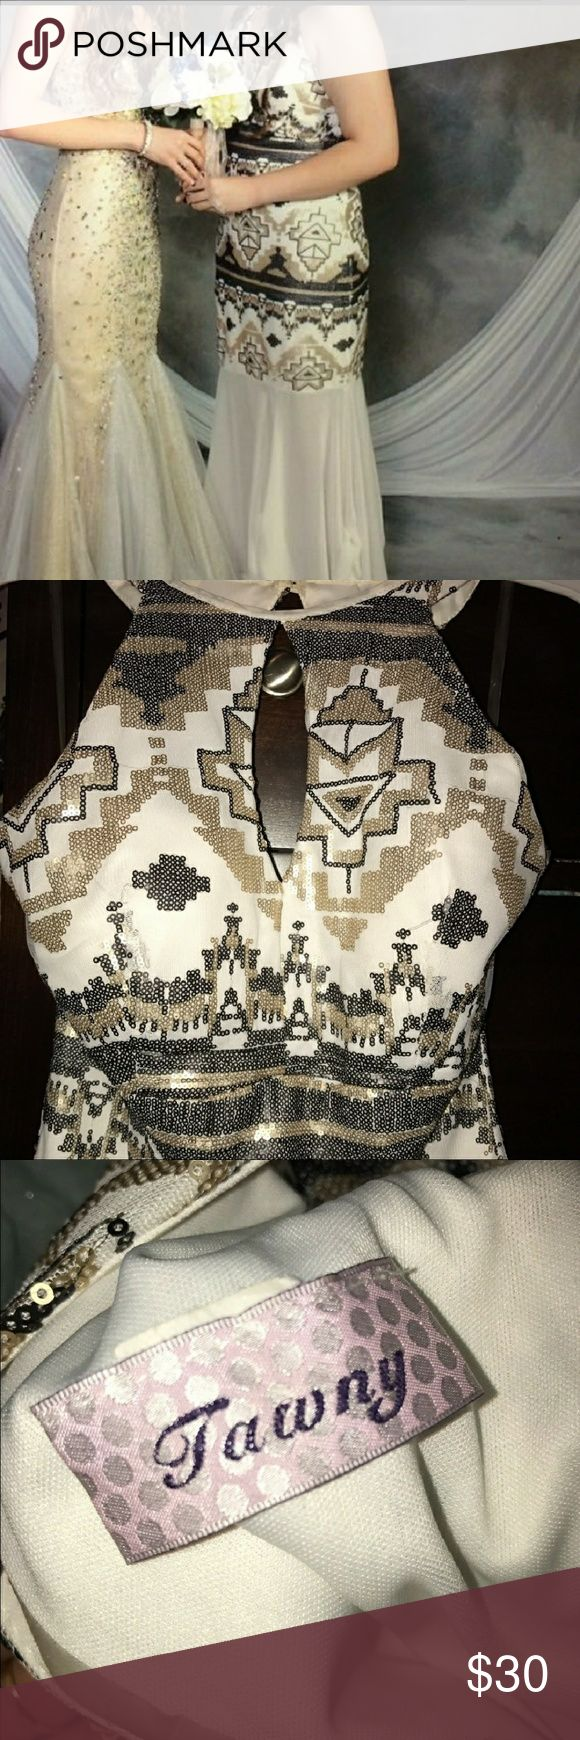 Aztec pattern prom dress Black white and gold sequin prom dress worn once.  No missing sequins, in excellent condition. tawny Dresses Prom